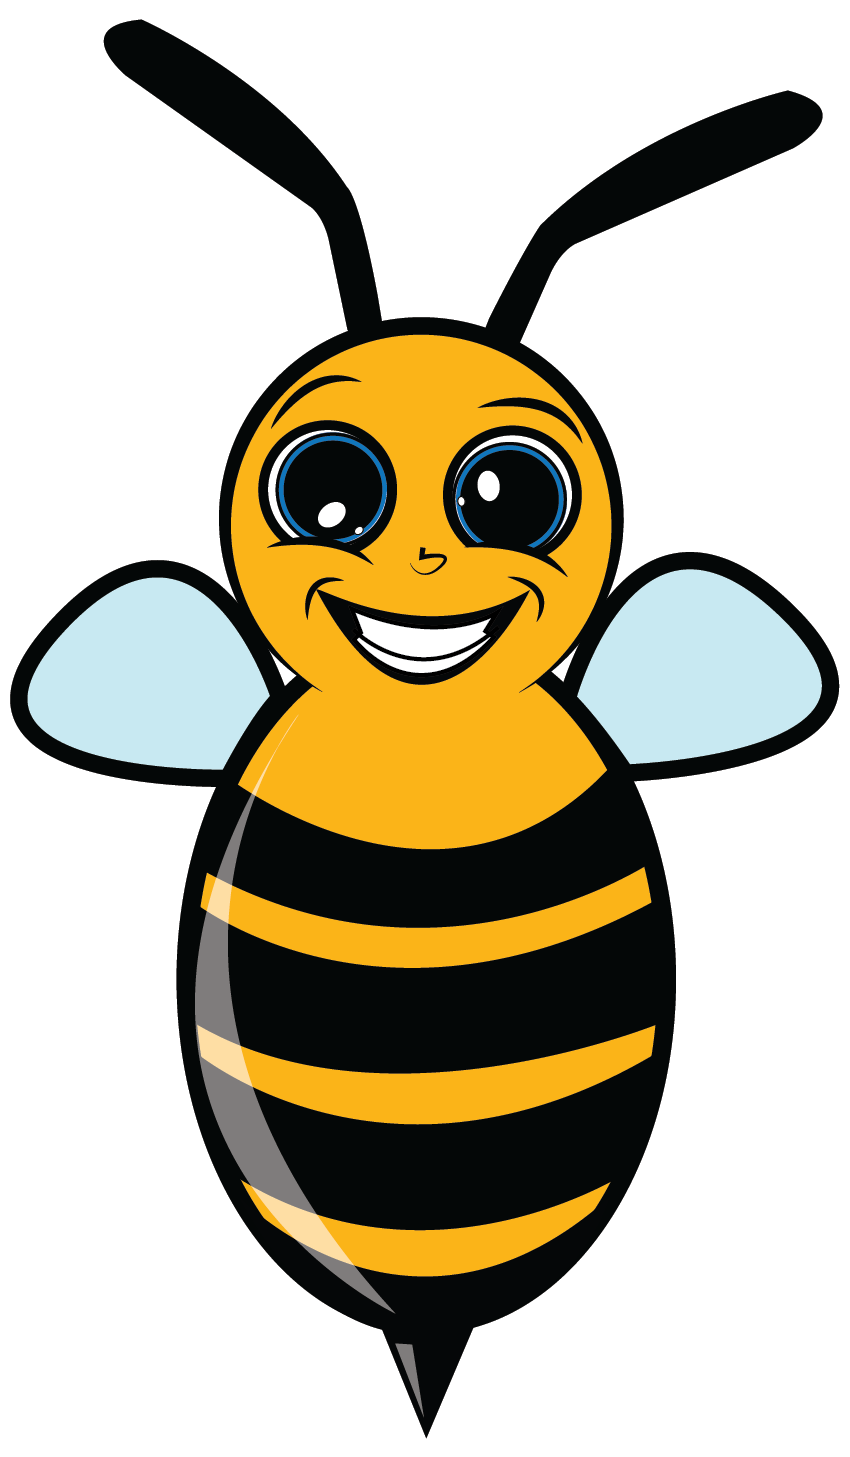 Wisconsin Science Festival Beesly Mascot